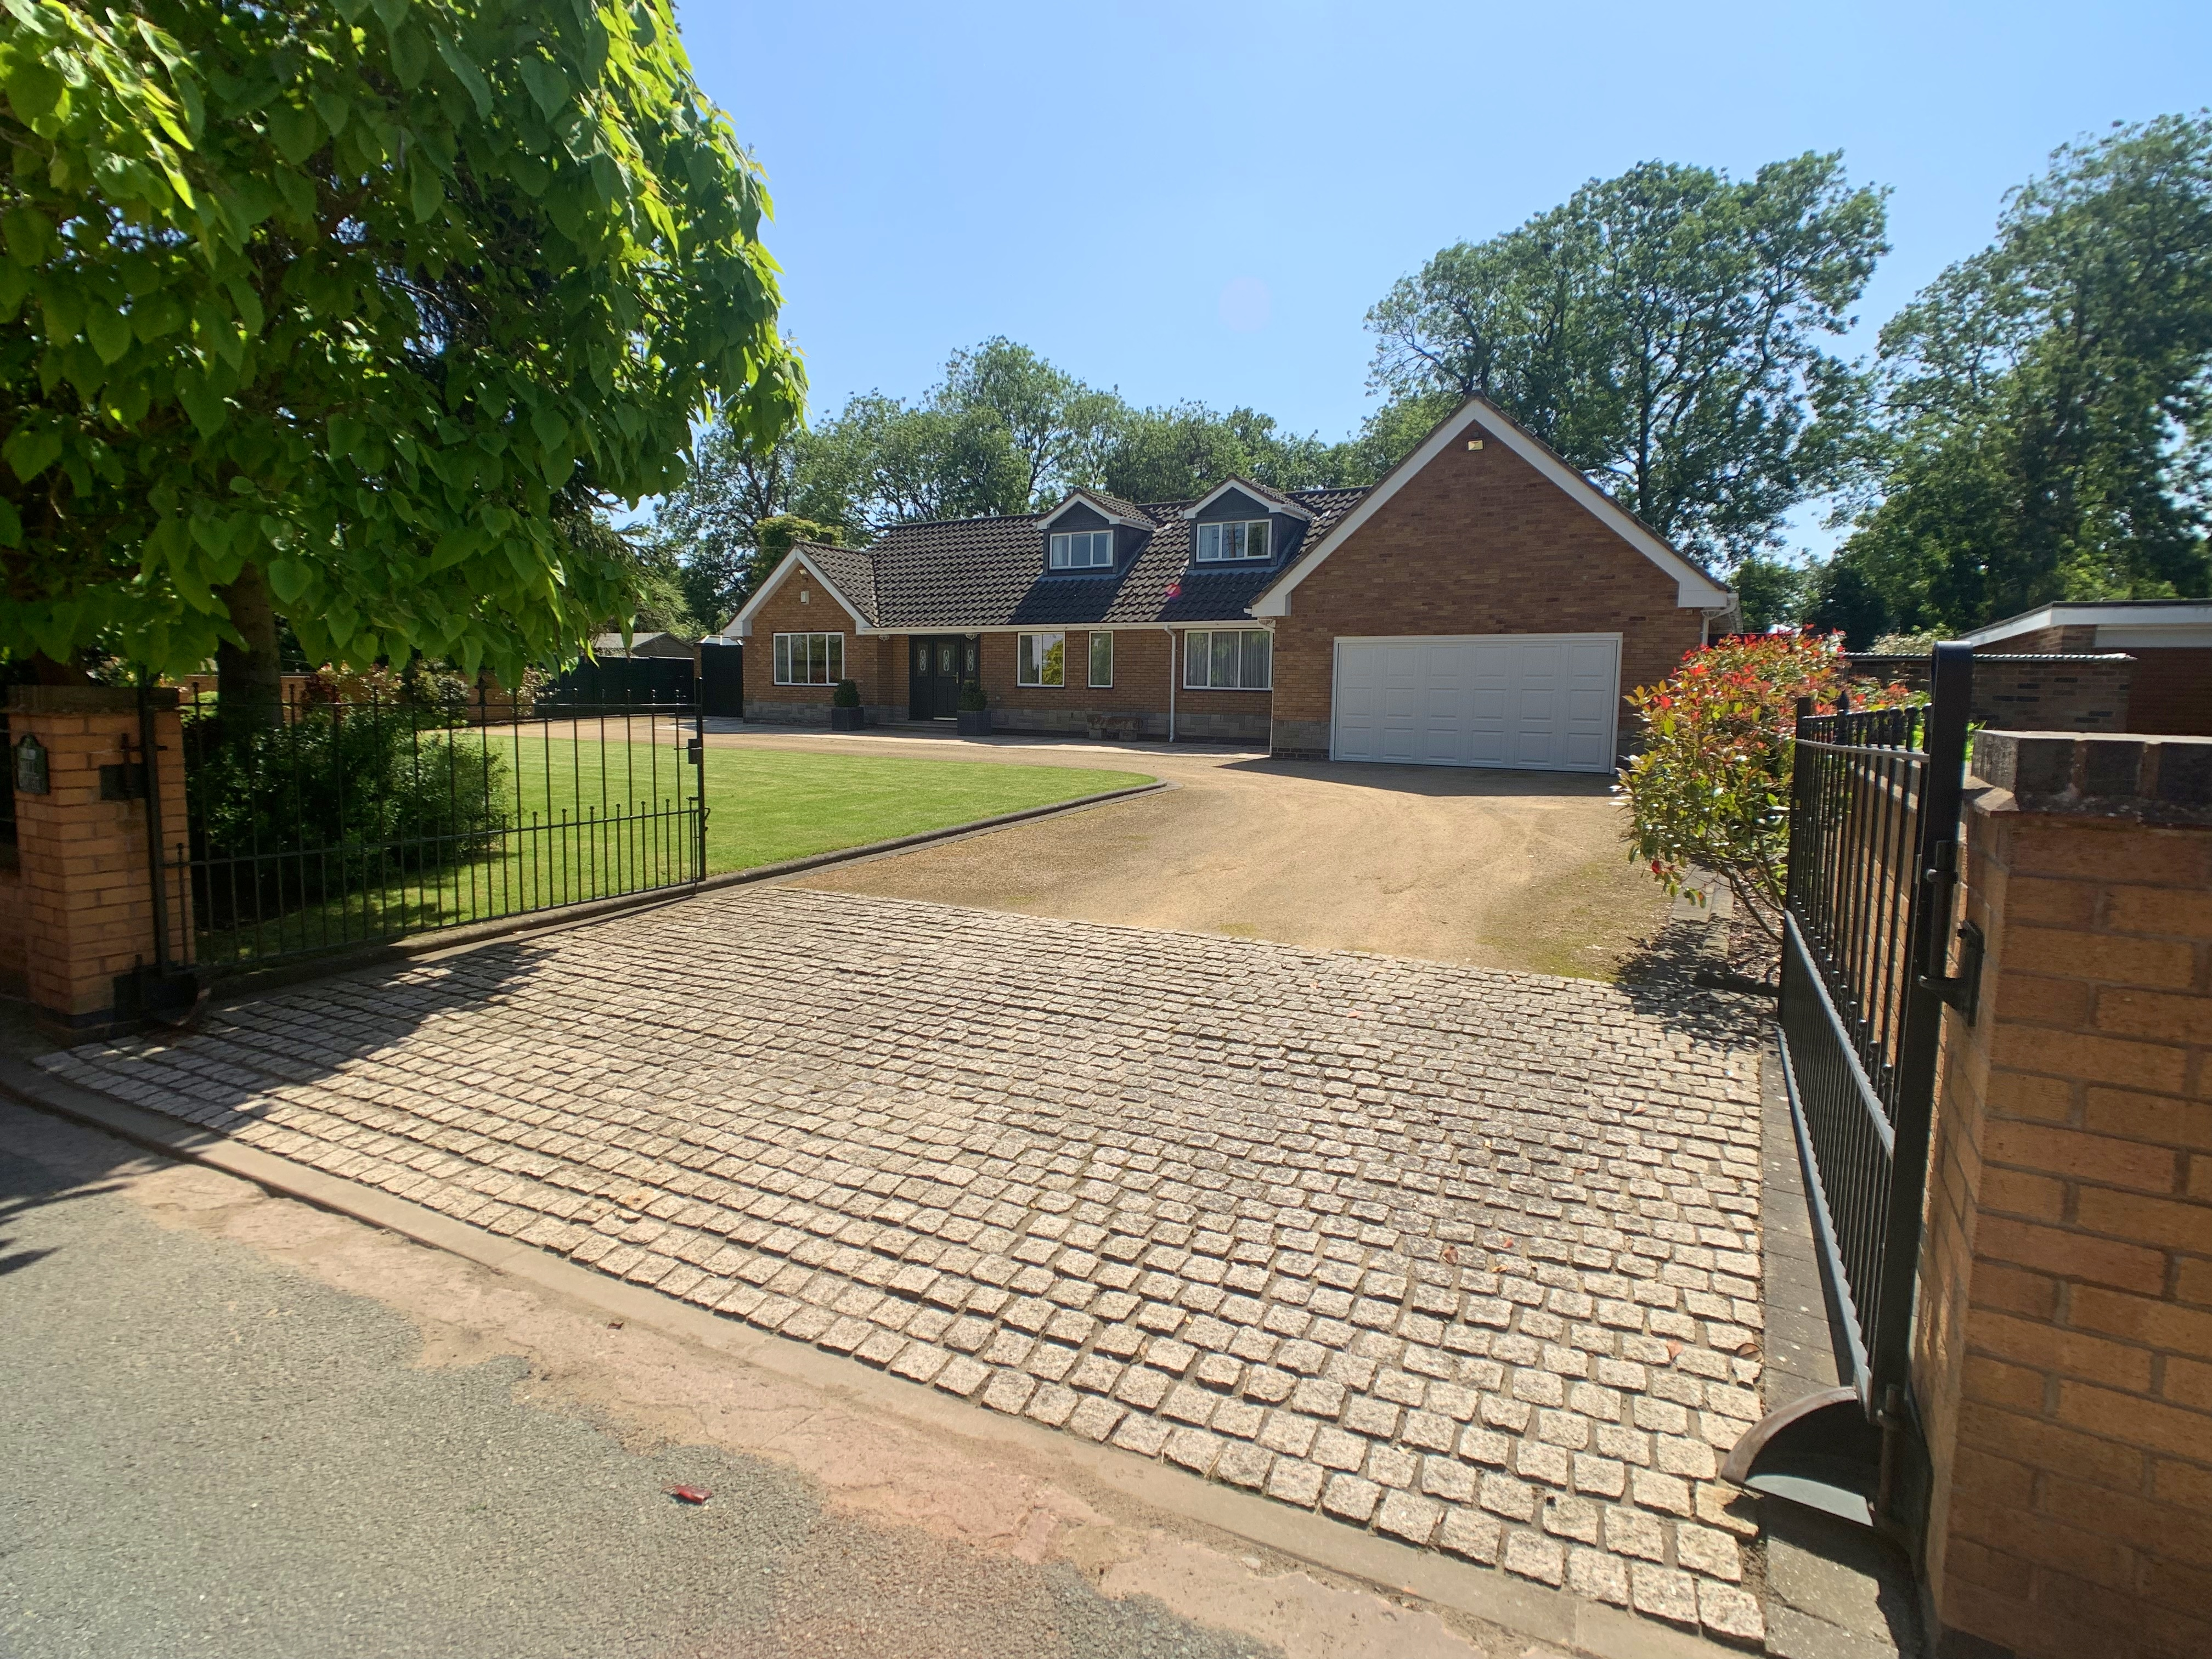 property for sale in staffordshire blog for open house stafford